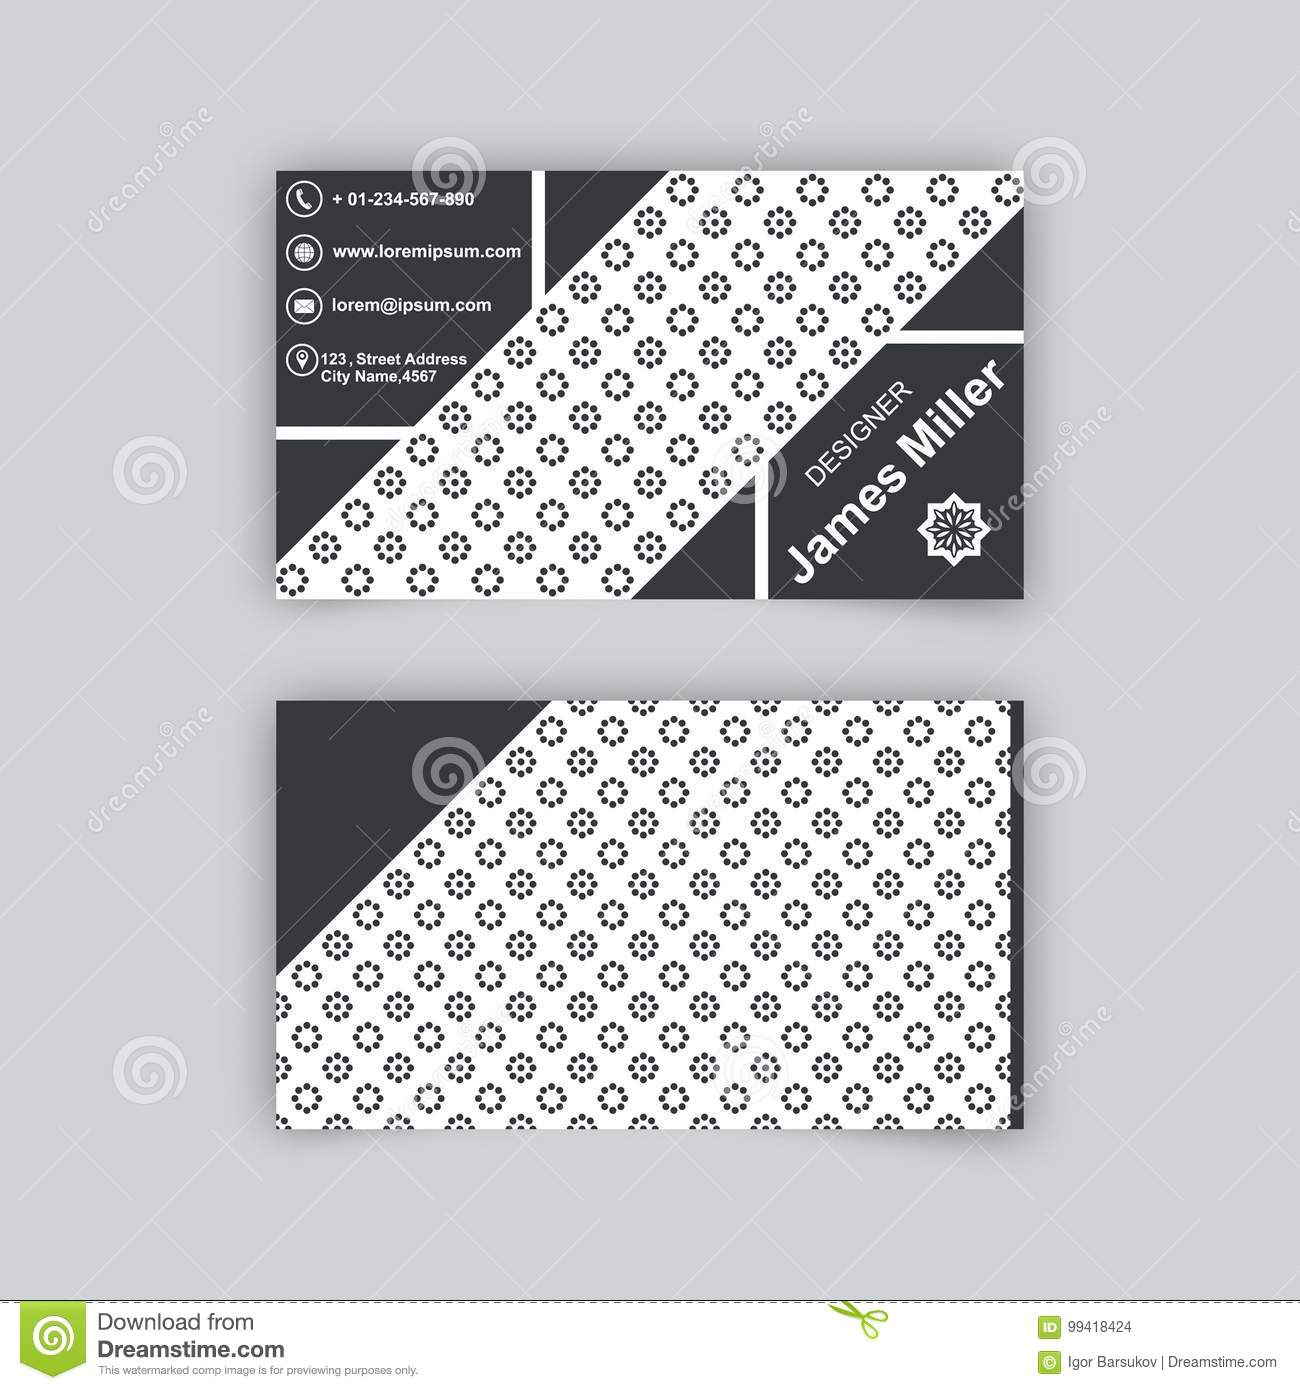 Business card blank template stock vector illustration of mobile download business card blank template stock vector illustration of mobile name 99418424 accmission Choice Image